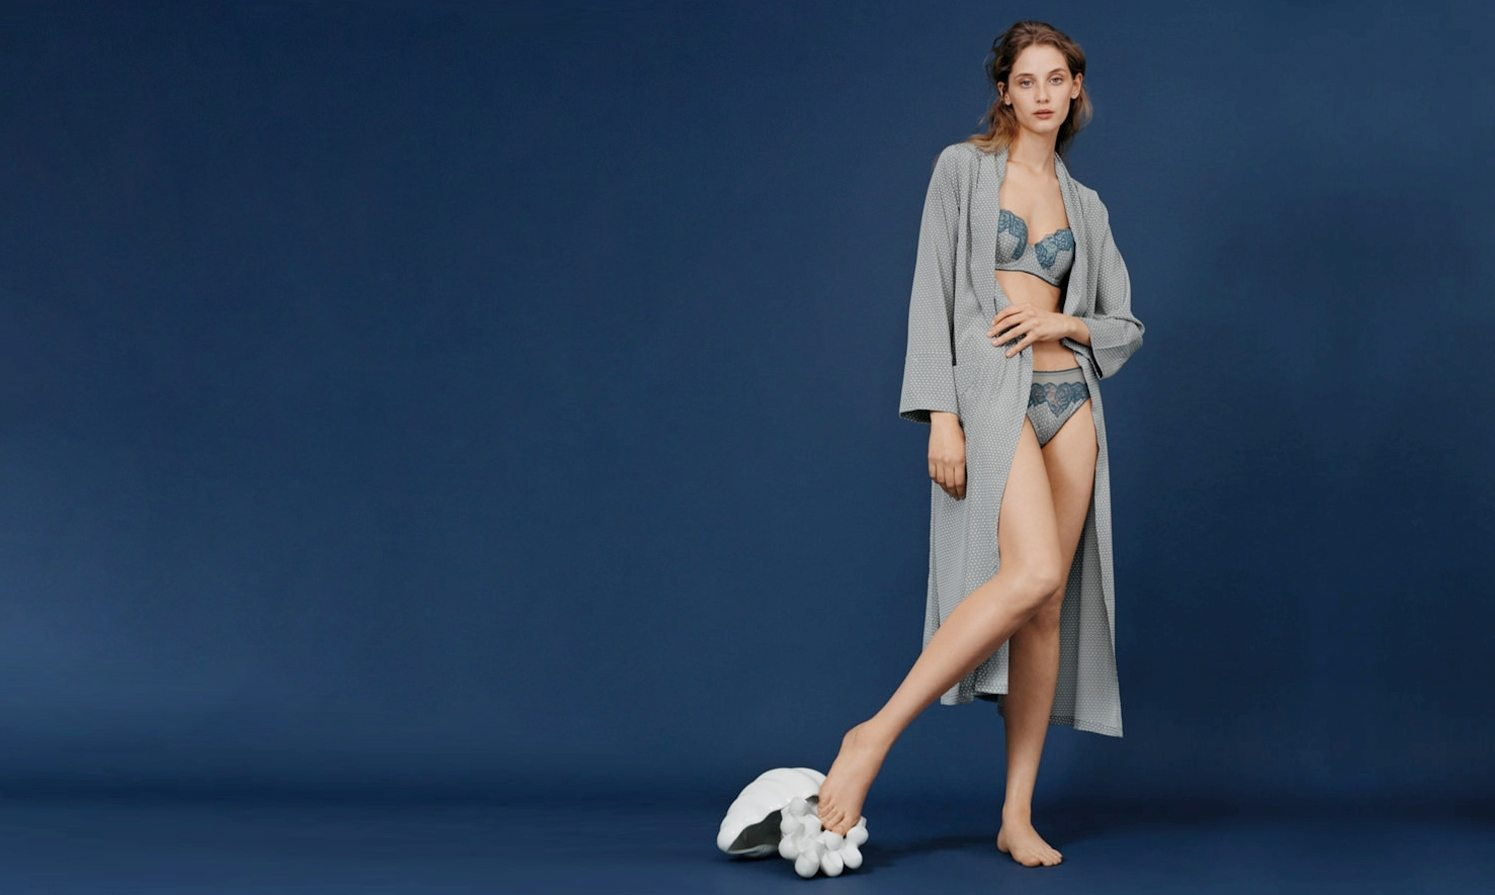 STELLA MCCARTNEY FALL 2015 LINGERIE COLLECTION